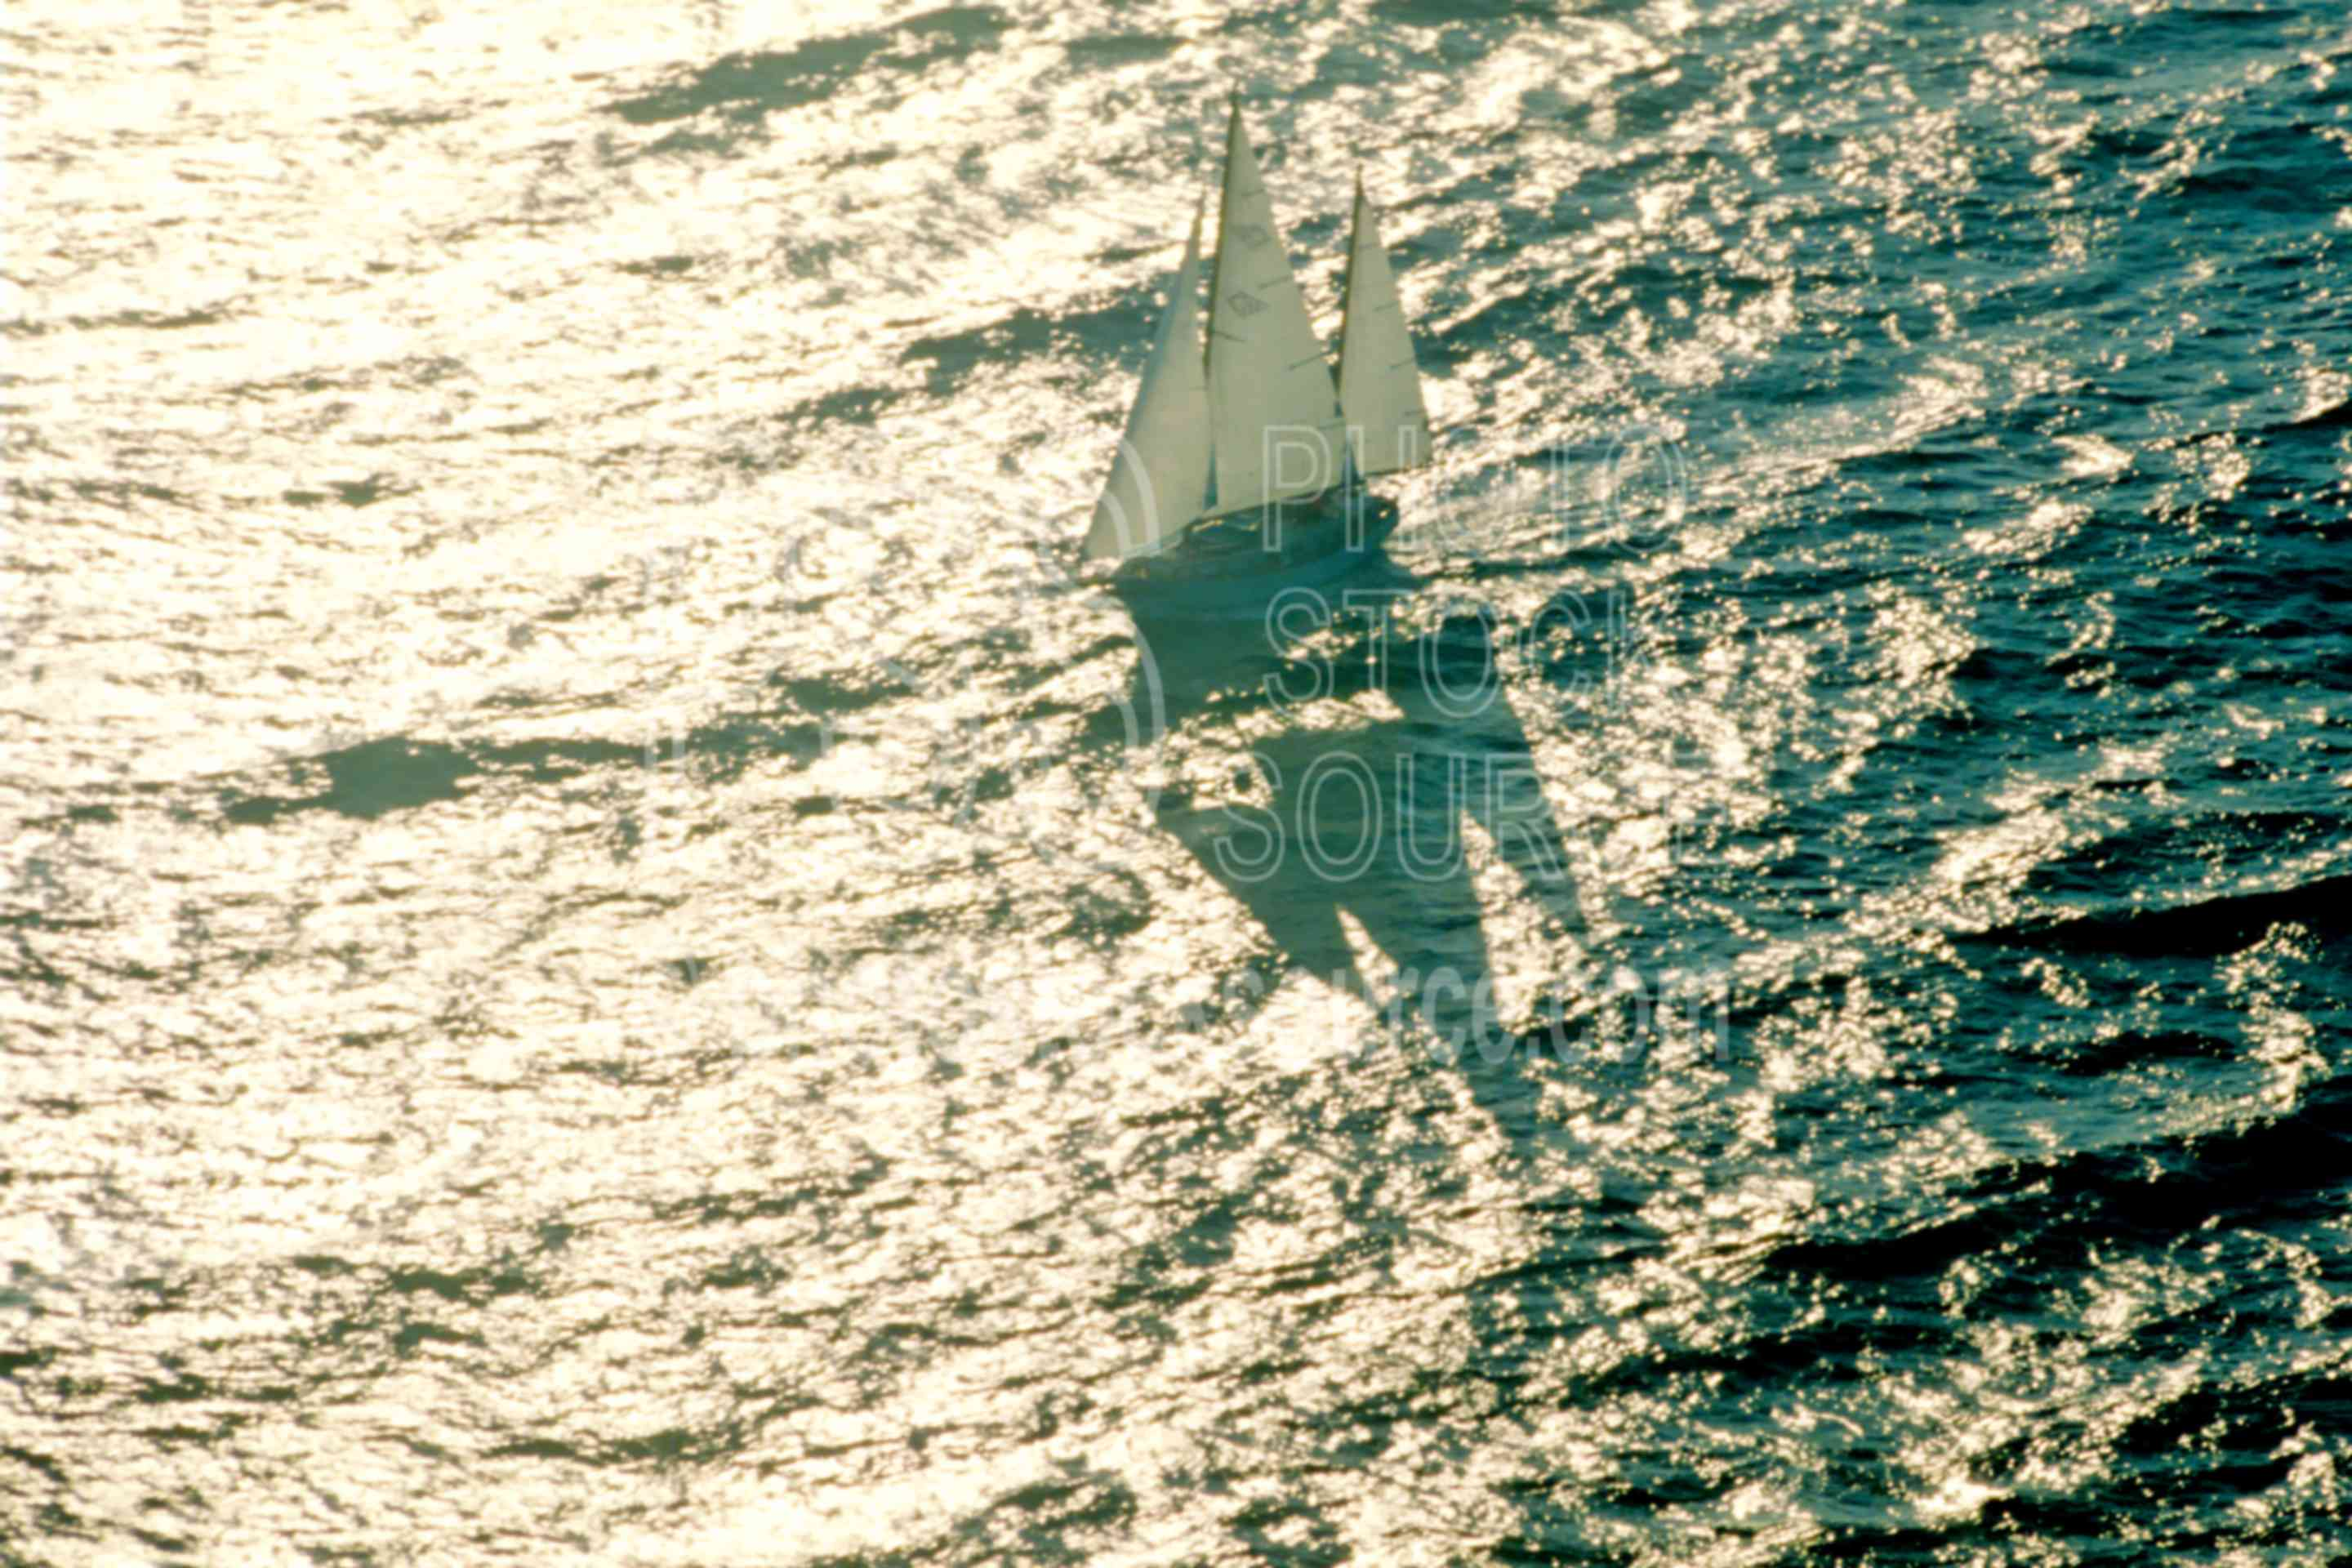 Sailboat on the Ocean,ocean,sailboat,aerial,boats ships,seascapes,aeronautics,aerials